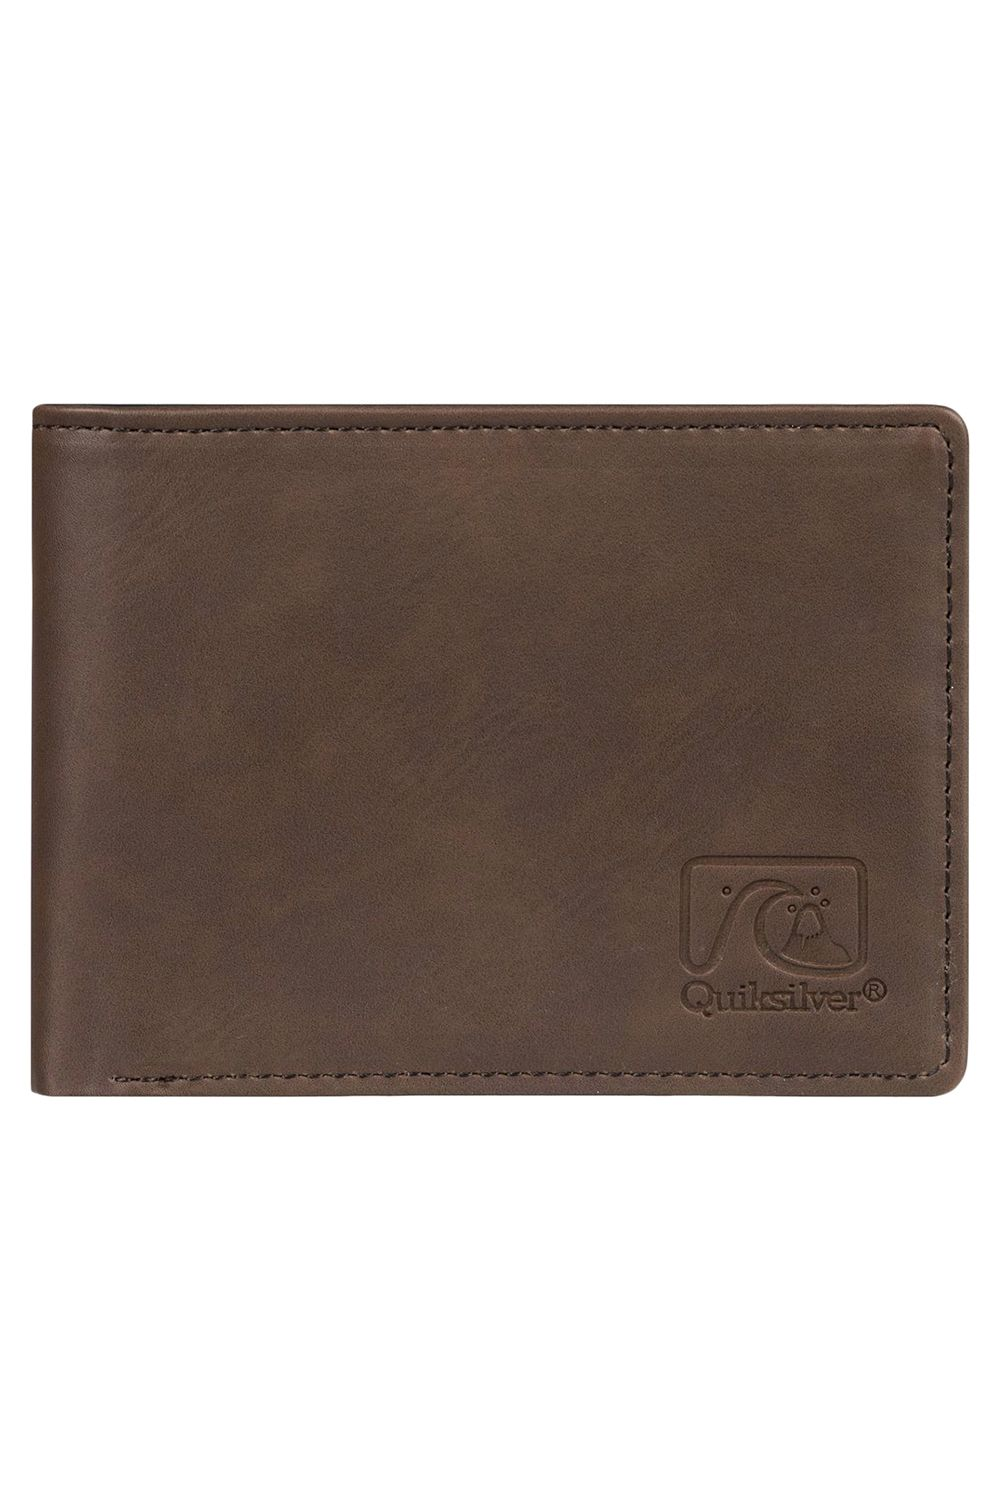 Carteira PU Quiksilver SLIM VINTAGEIV Chocolate Brown